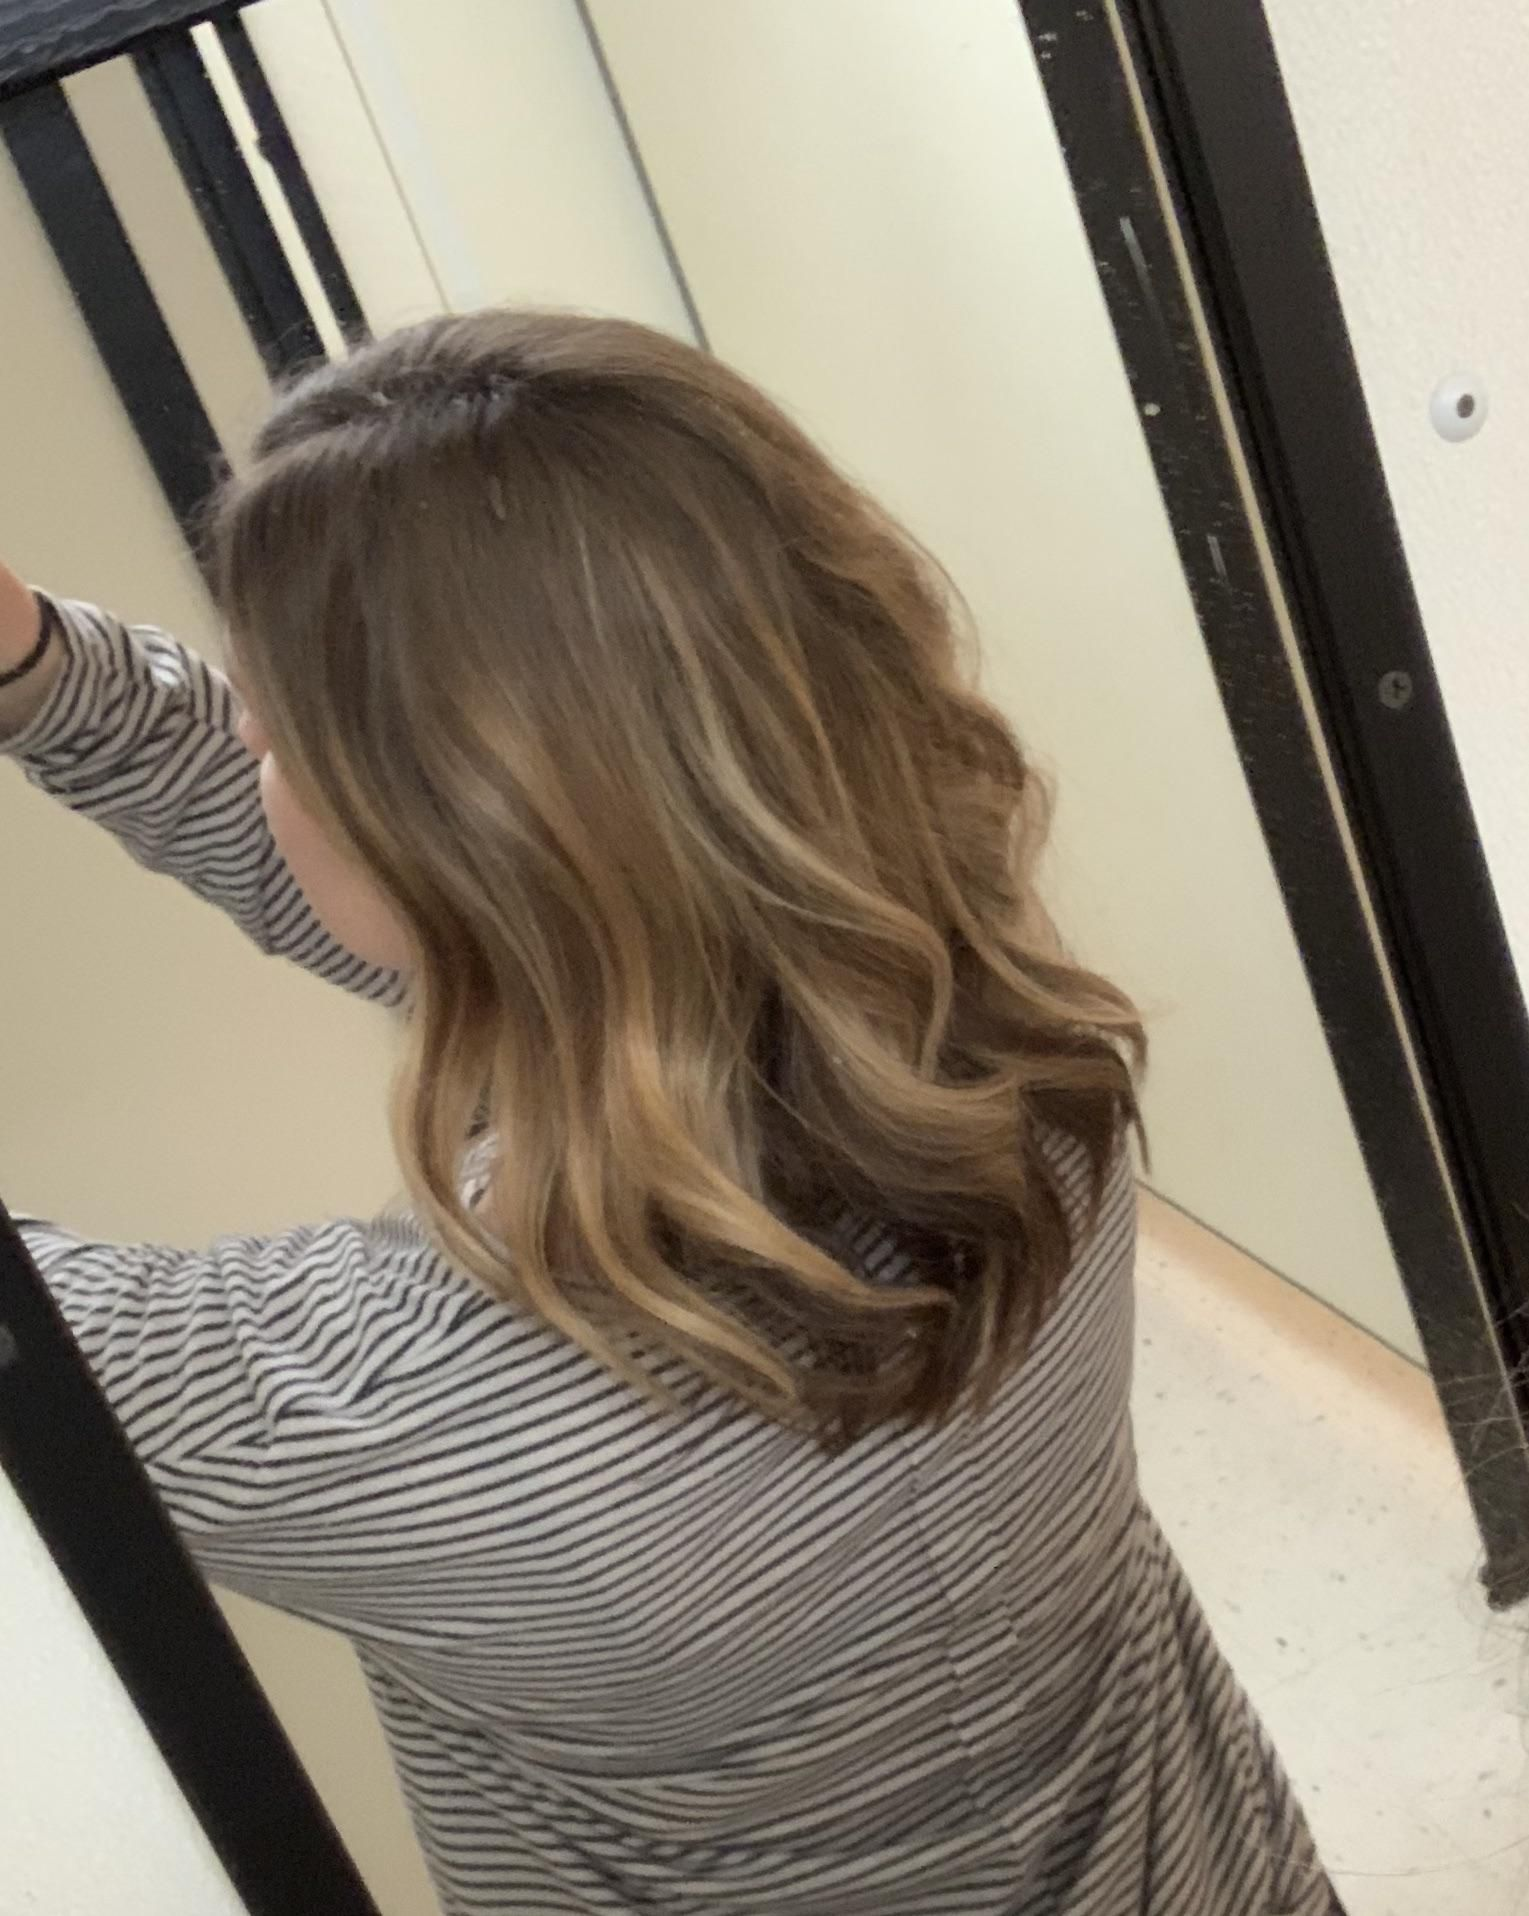 My Hair Stylist Styled My Hair Like This With A Round Brush And Hair Dryer Howwwwwwww I Can Never Get My Hair To Look This Pretty Hair Hair Stylist My Hair